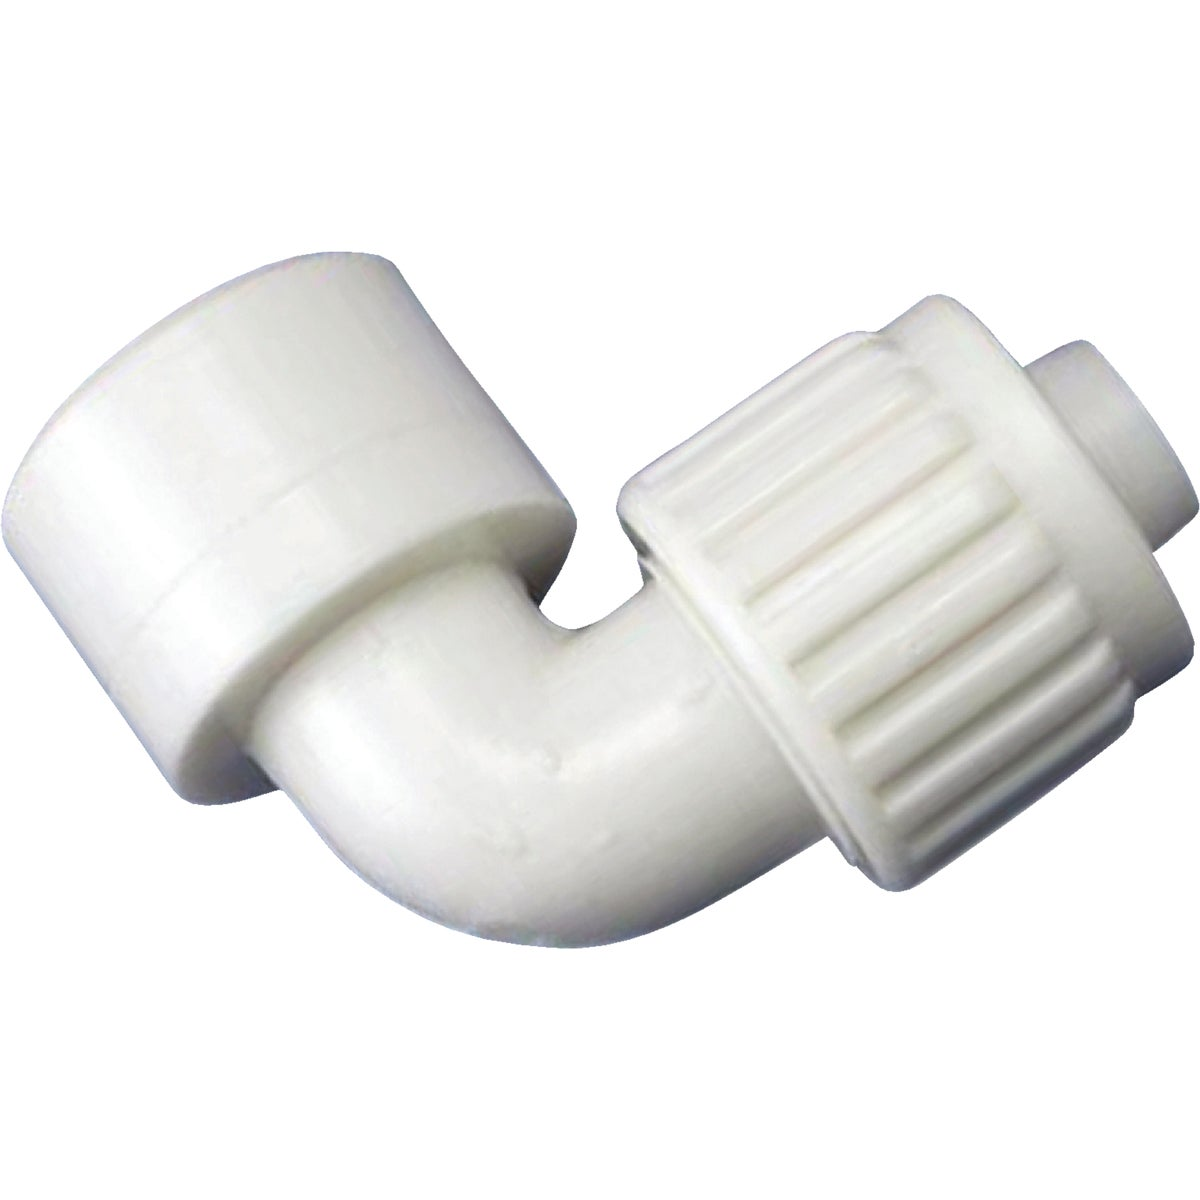 1/2X1/2FPT ELBOW - 16802 by Flair It West